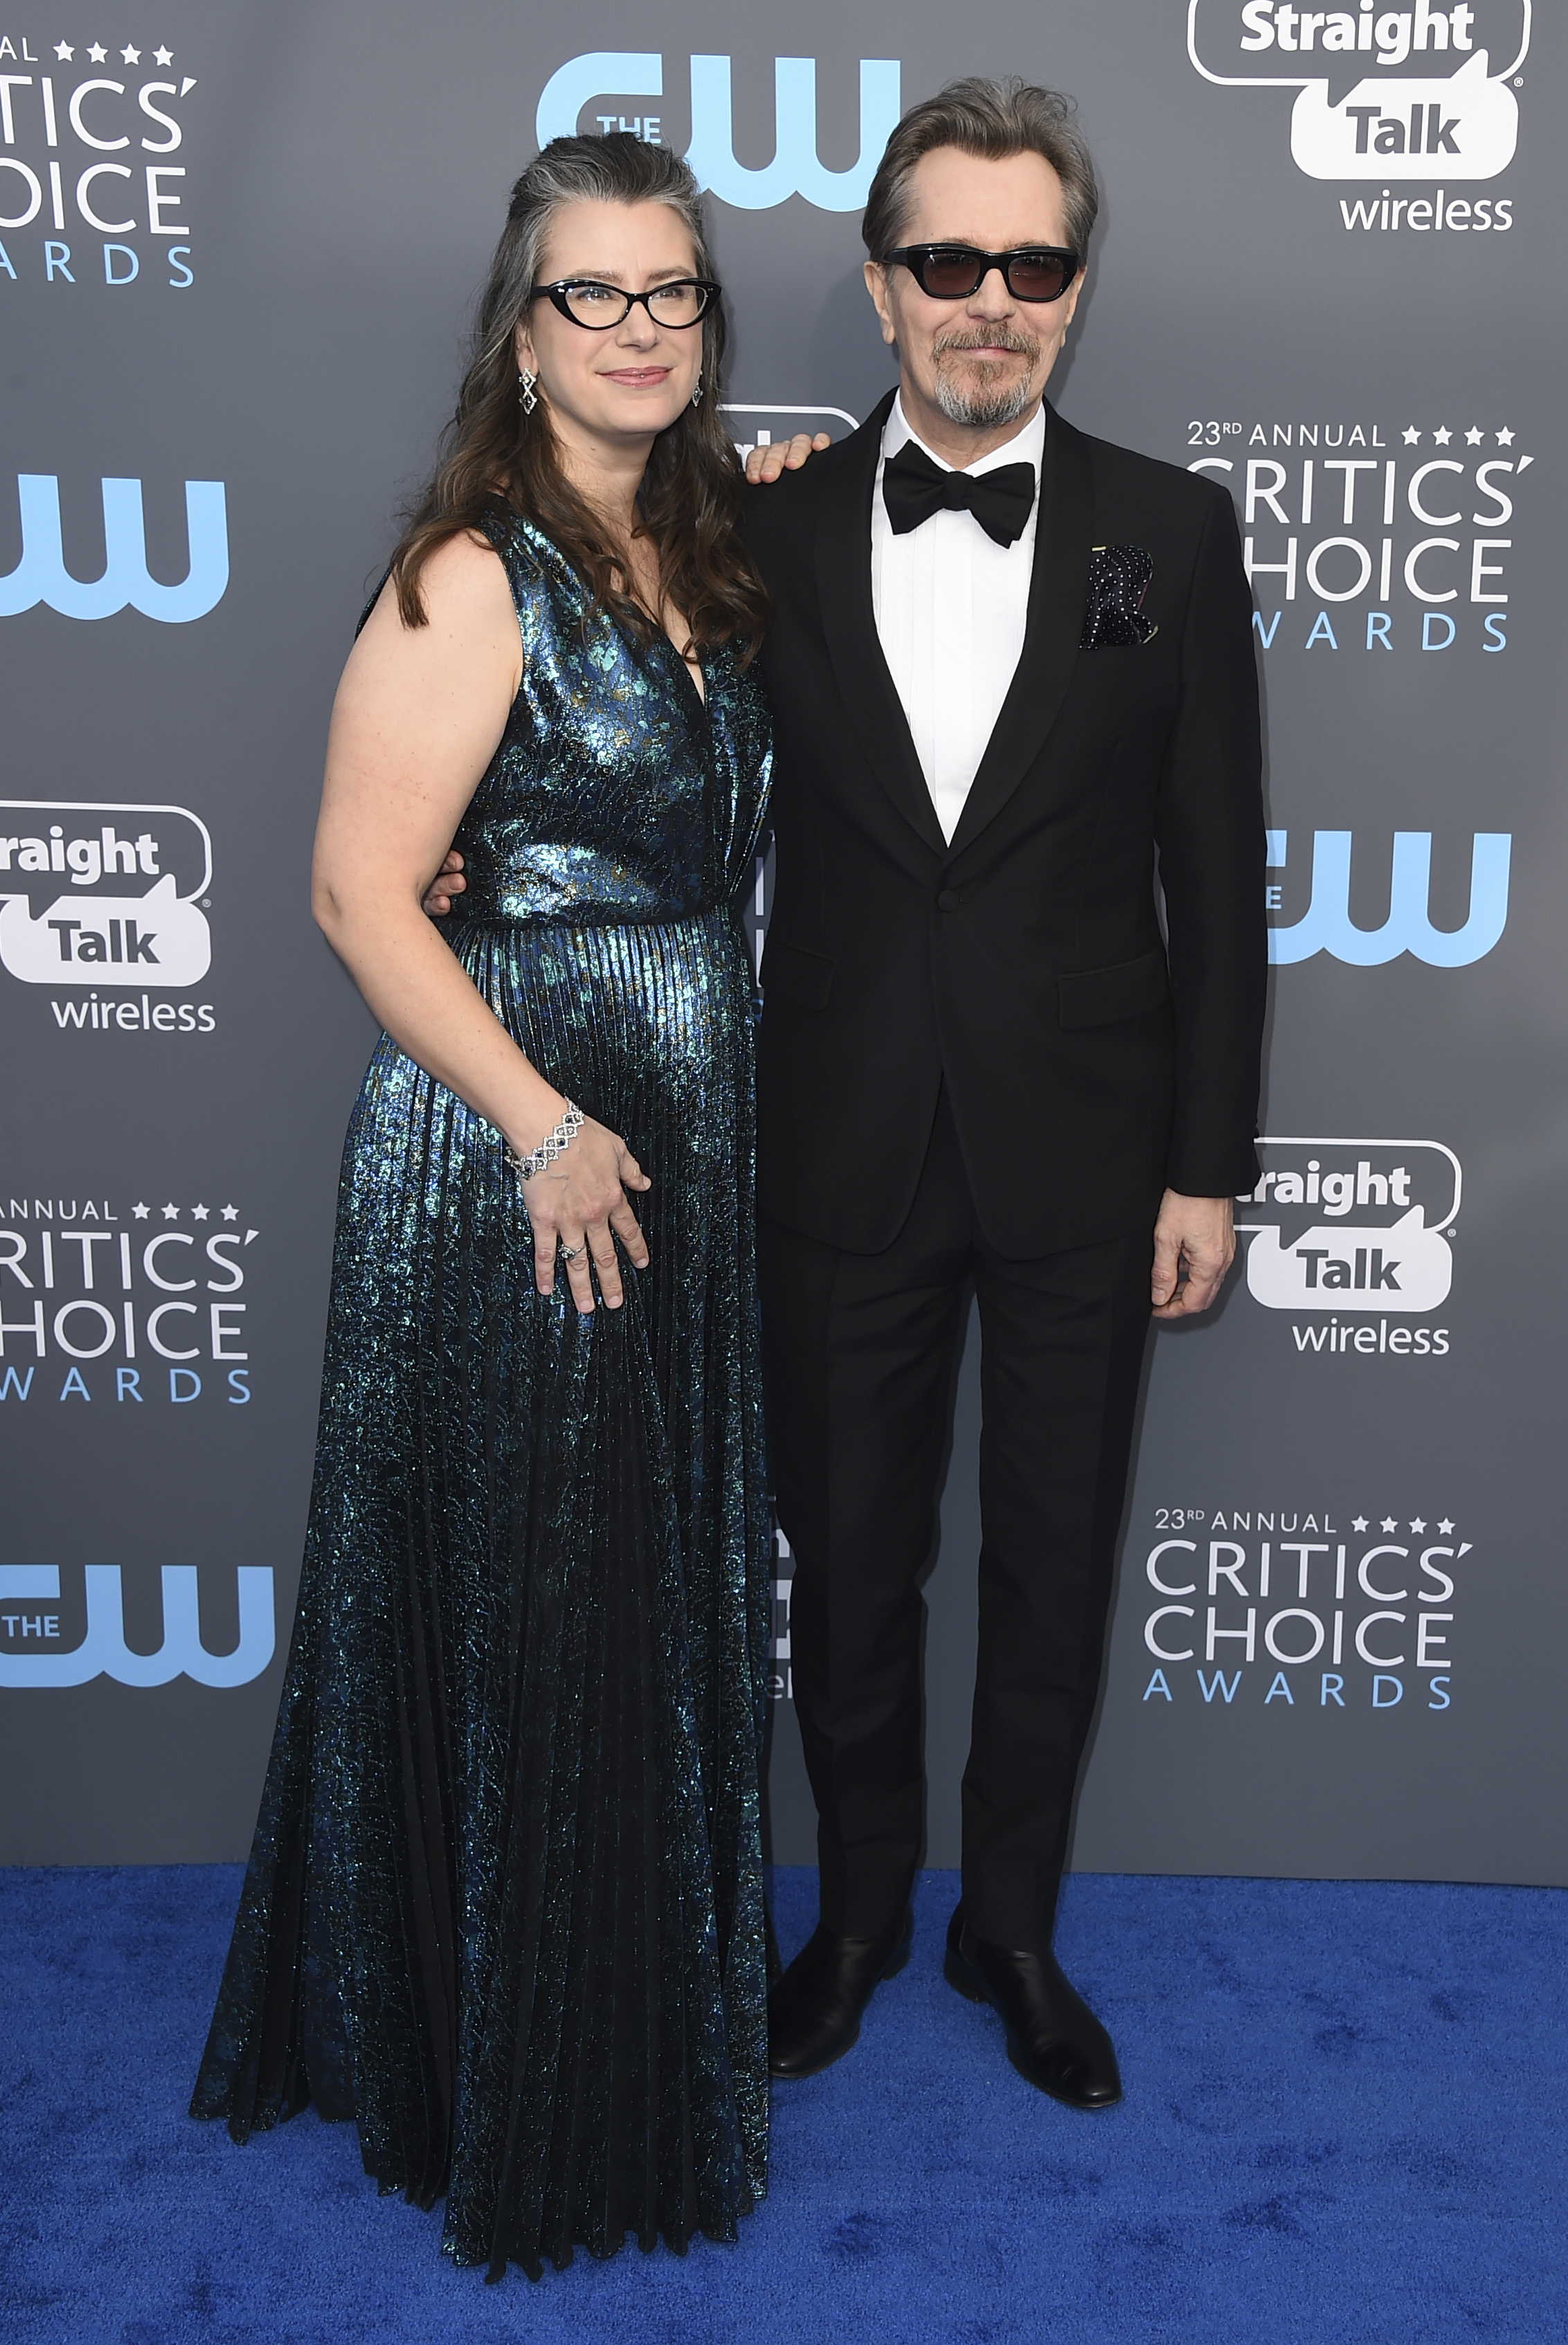 <div class='meta'><div class='origin-logo' data-origin='AP'></div><span class='caption-text' data-credit='Jordan Strauss/Invision/AP'>Gisele Schmidt, left, and Gary Oldman arrive at the 23rd annual Critics' Choice Awards at the Barker Hangar on Thursday, Jan. 11, 2018, in Santa Monica, Calif.</span></div>